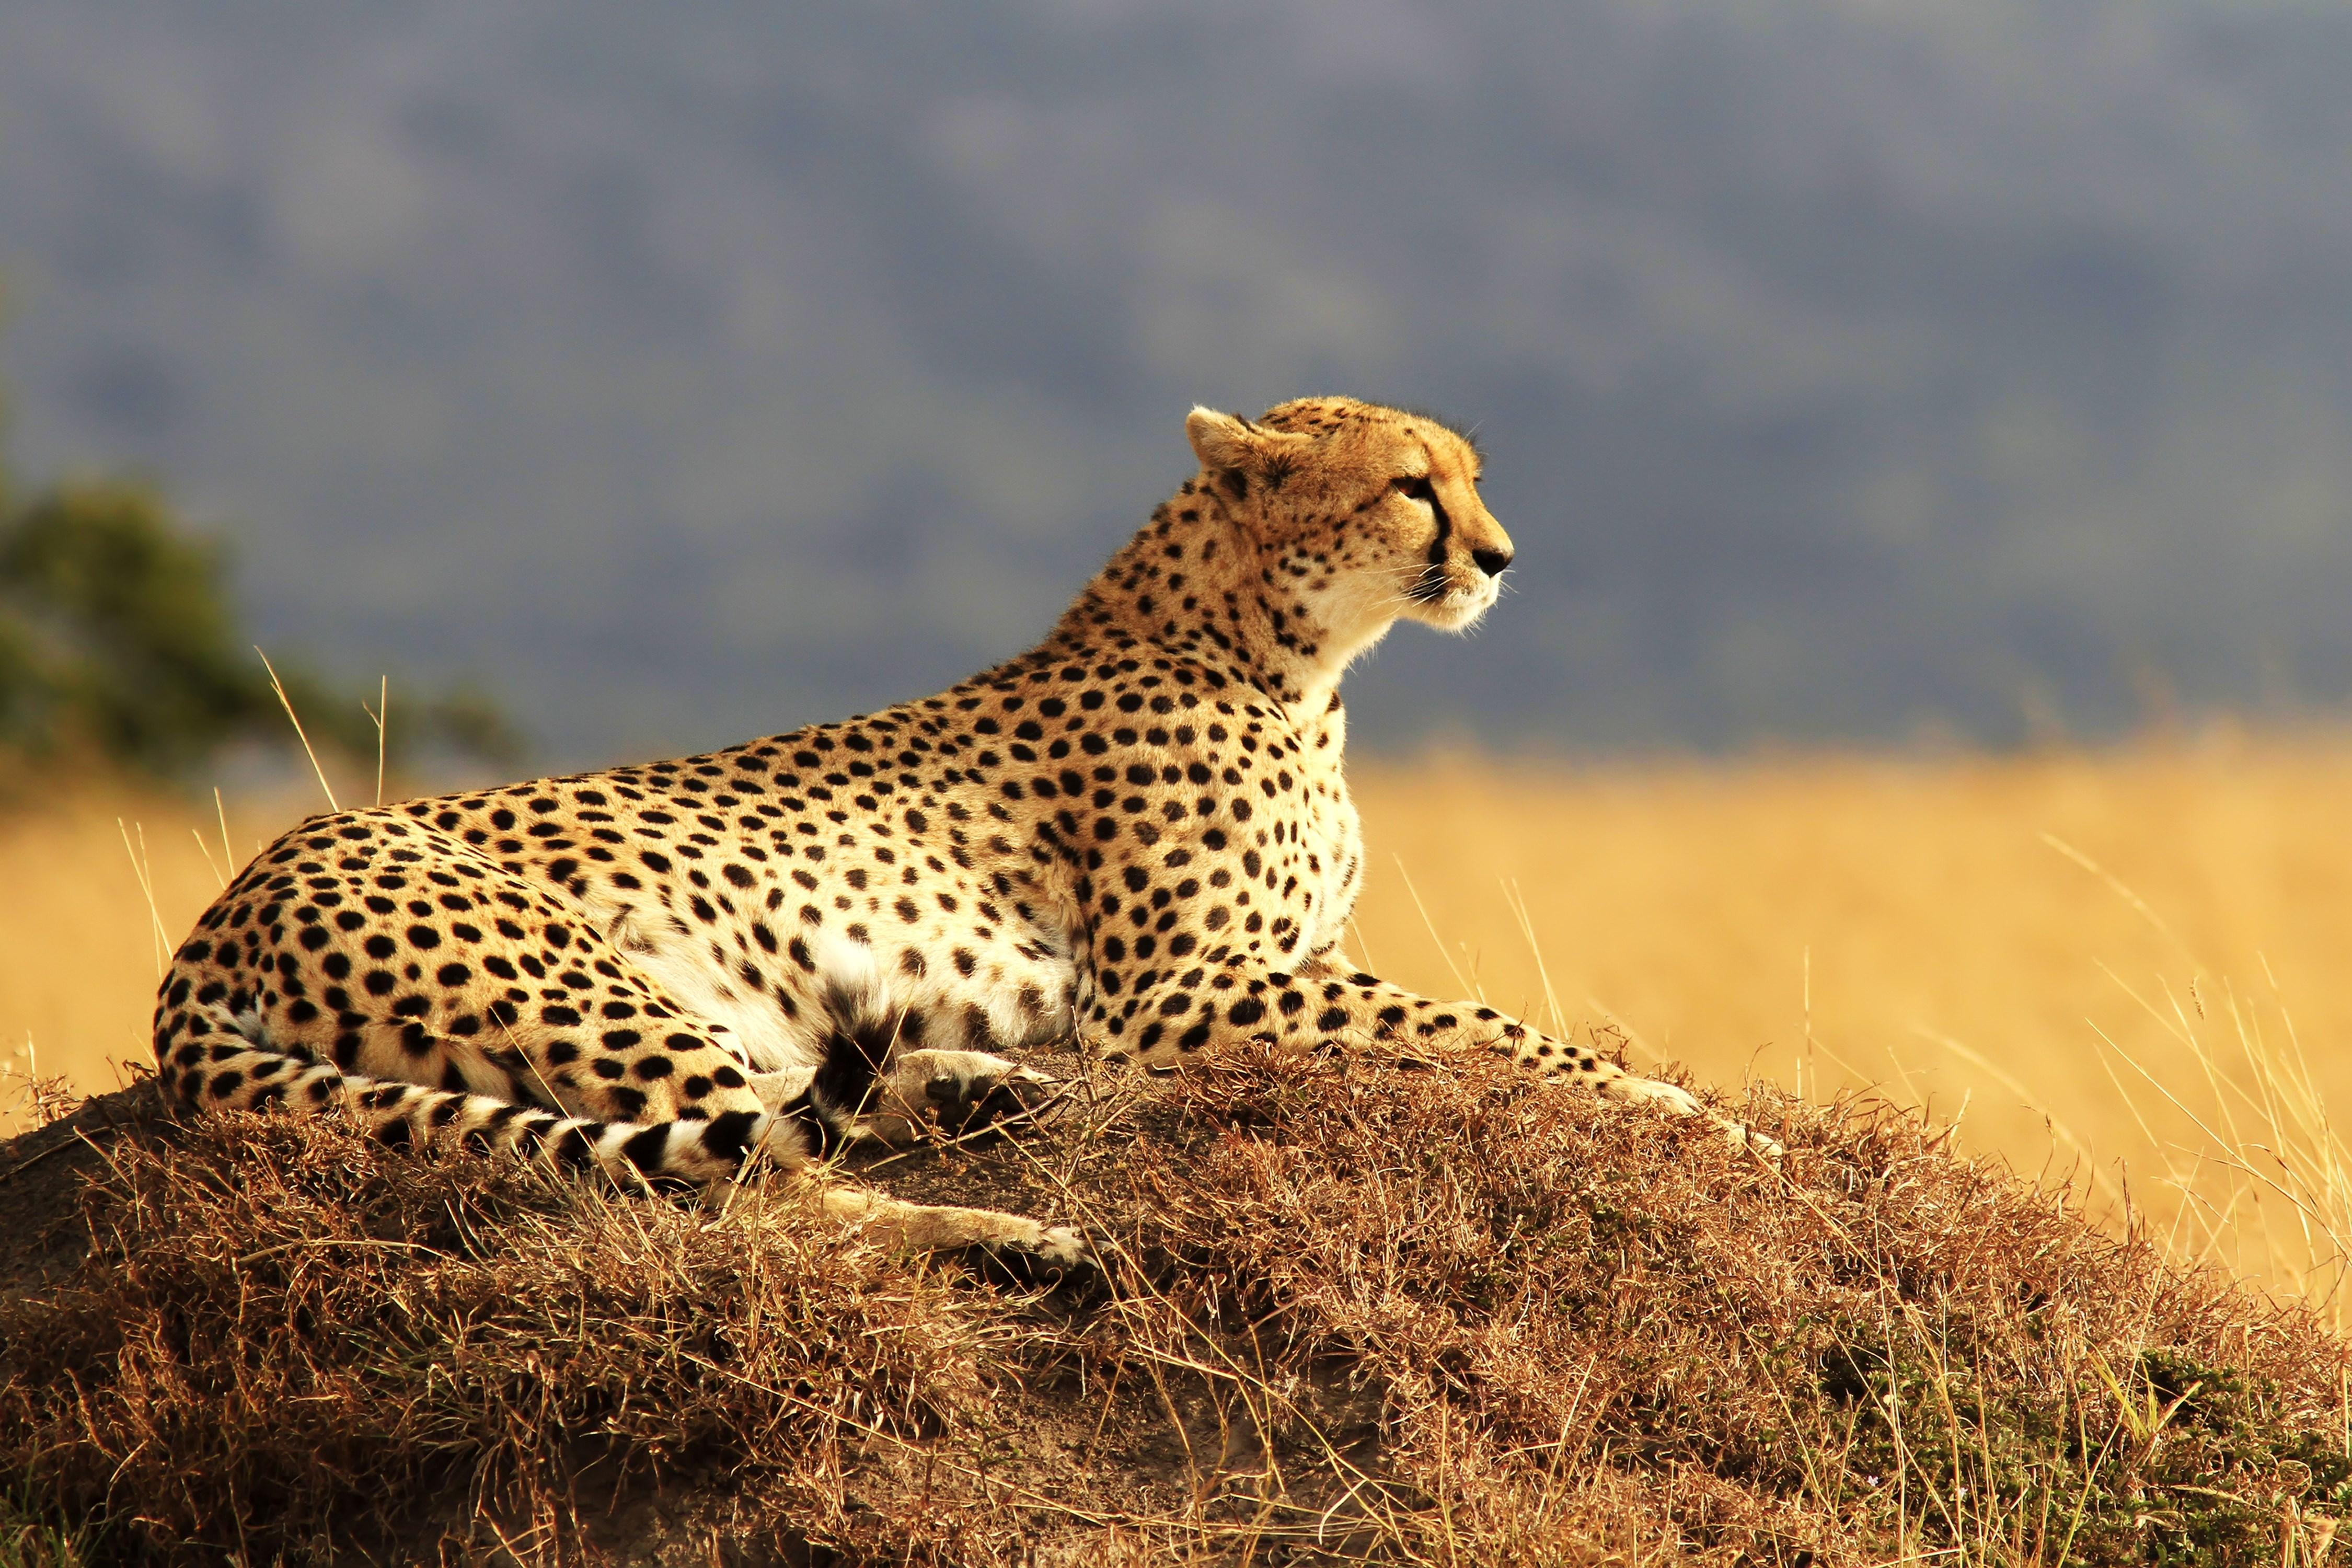 1462489 4500x3000 free screensaver wallpapers for cheetah